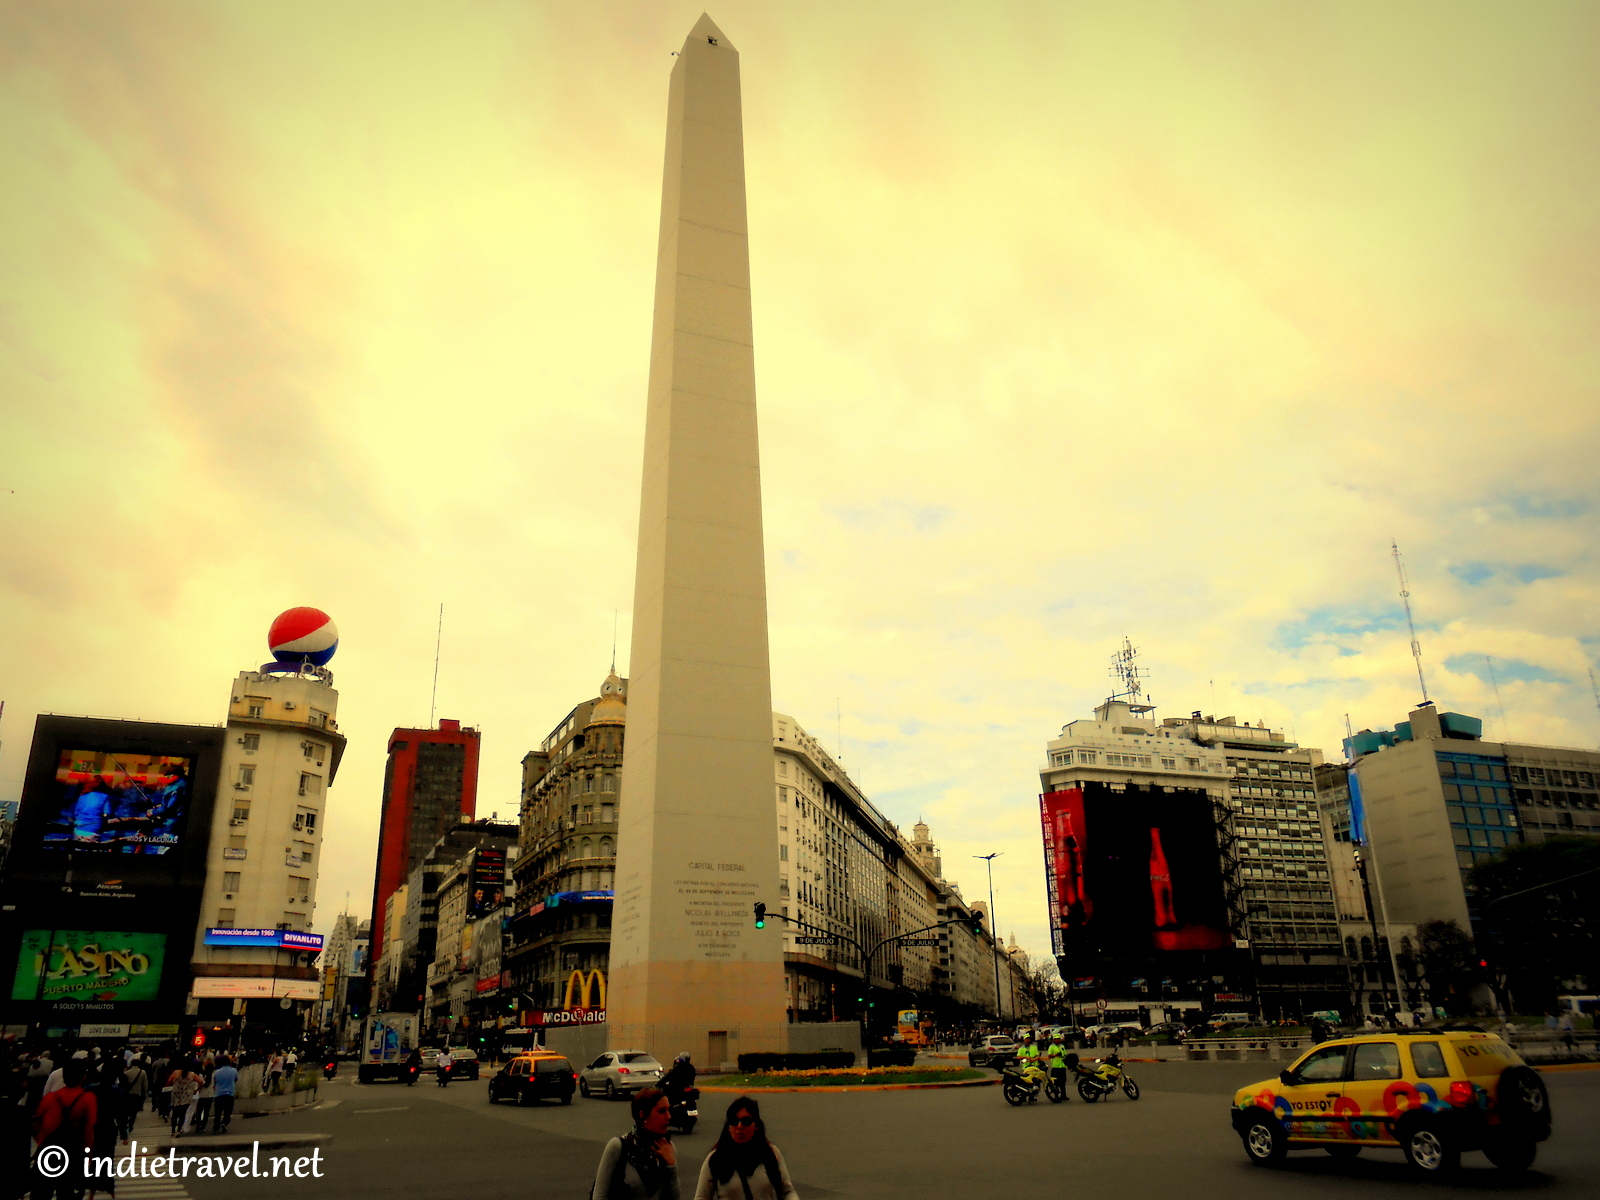 Hotel Review Microcentro Buenos Aires